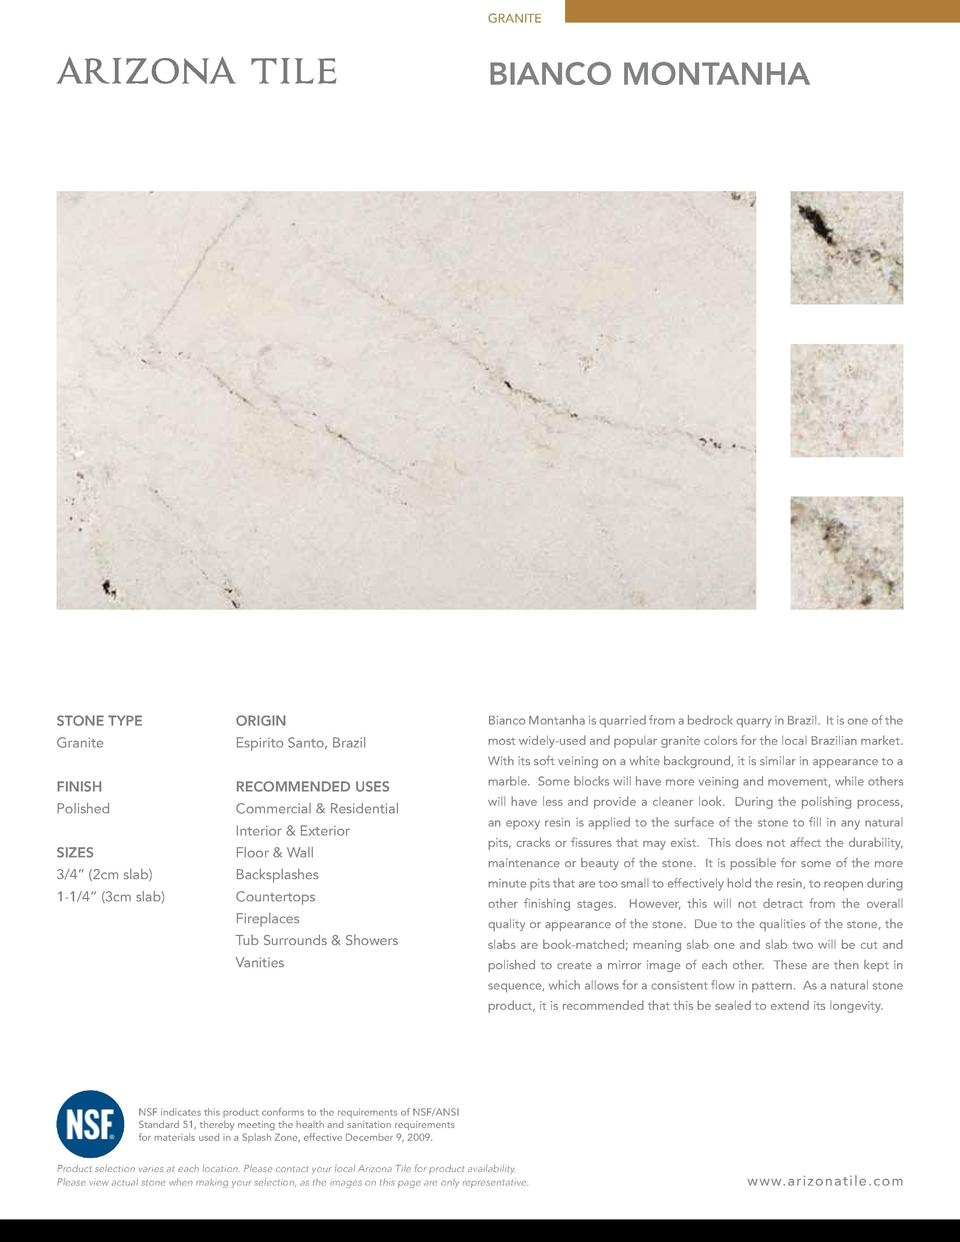 GRANITE  Bianco Montanha  STONE TYPE  ORIGIN  Bianco Montanha is quarried from a bedrock quarry in Brazil. It is one of th...